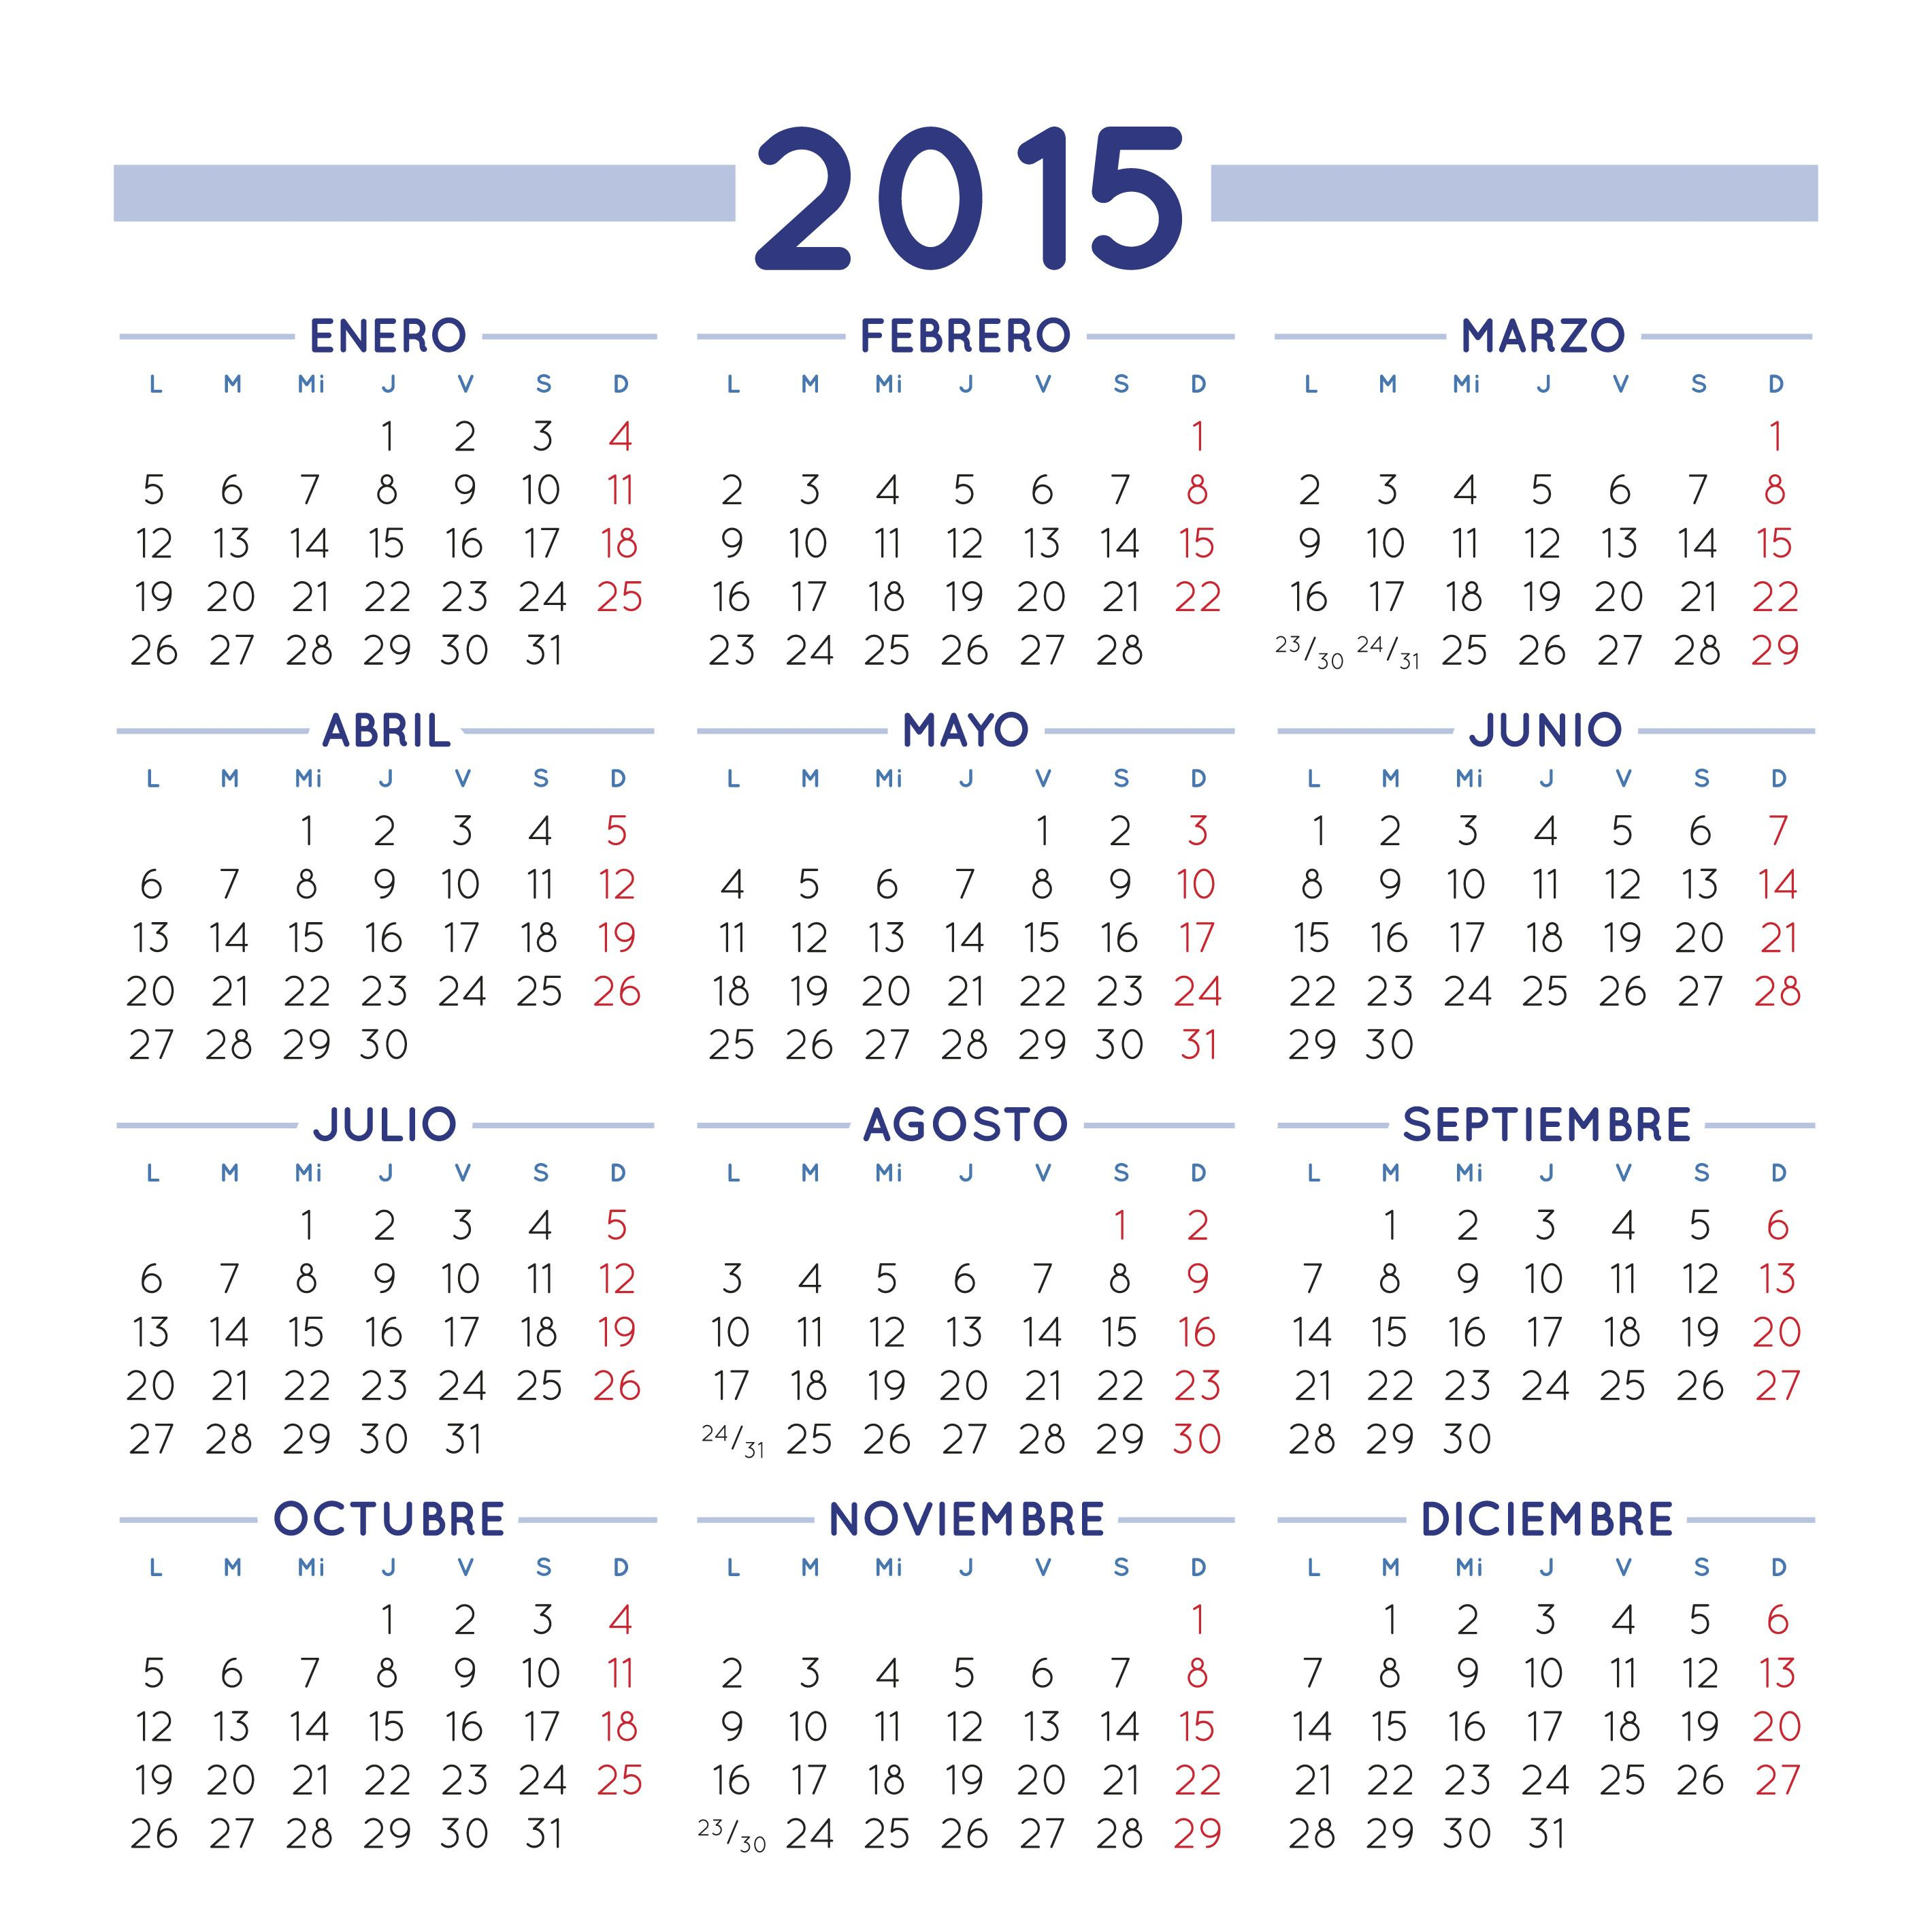 Calendario 2015 Para Imprimir Gratis | Calendar throughout Calendario 2015 Para Imprimir